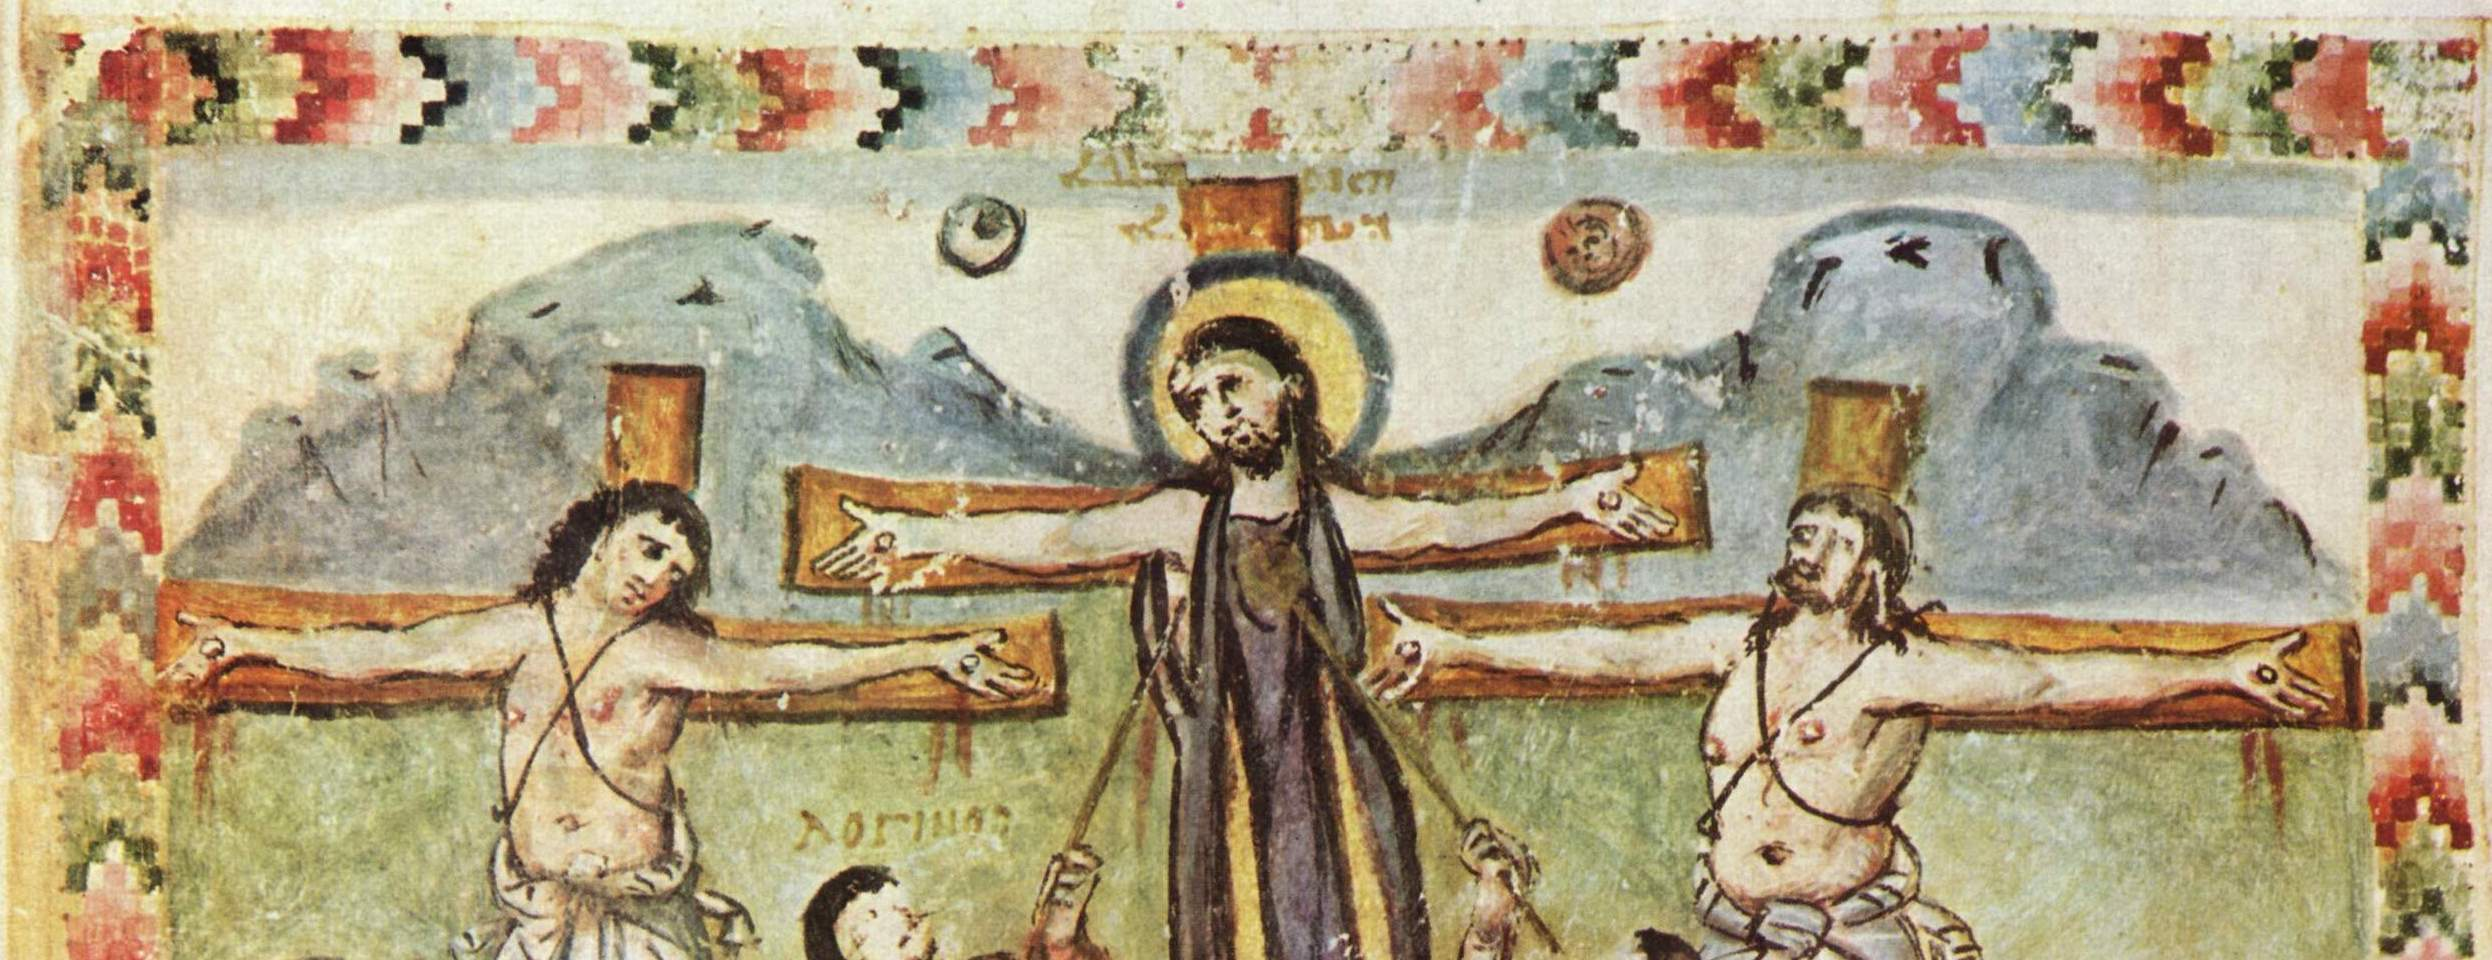 Figure 1. Detail of the Crucifixion. Rabbula Gospels. Florence, Biblioteca Medicea-Laurenziana, cod. Plut. I, 56, fol. 13r (Photo. Wikimedia Commons).